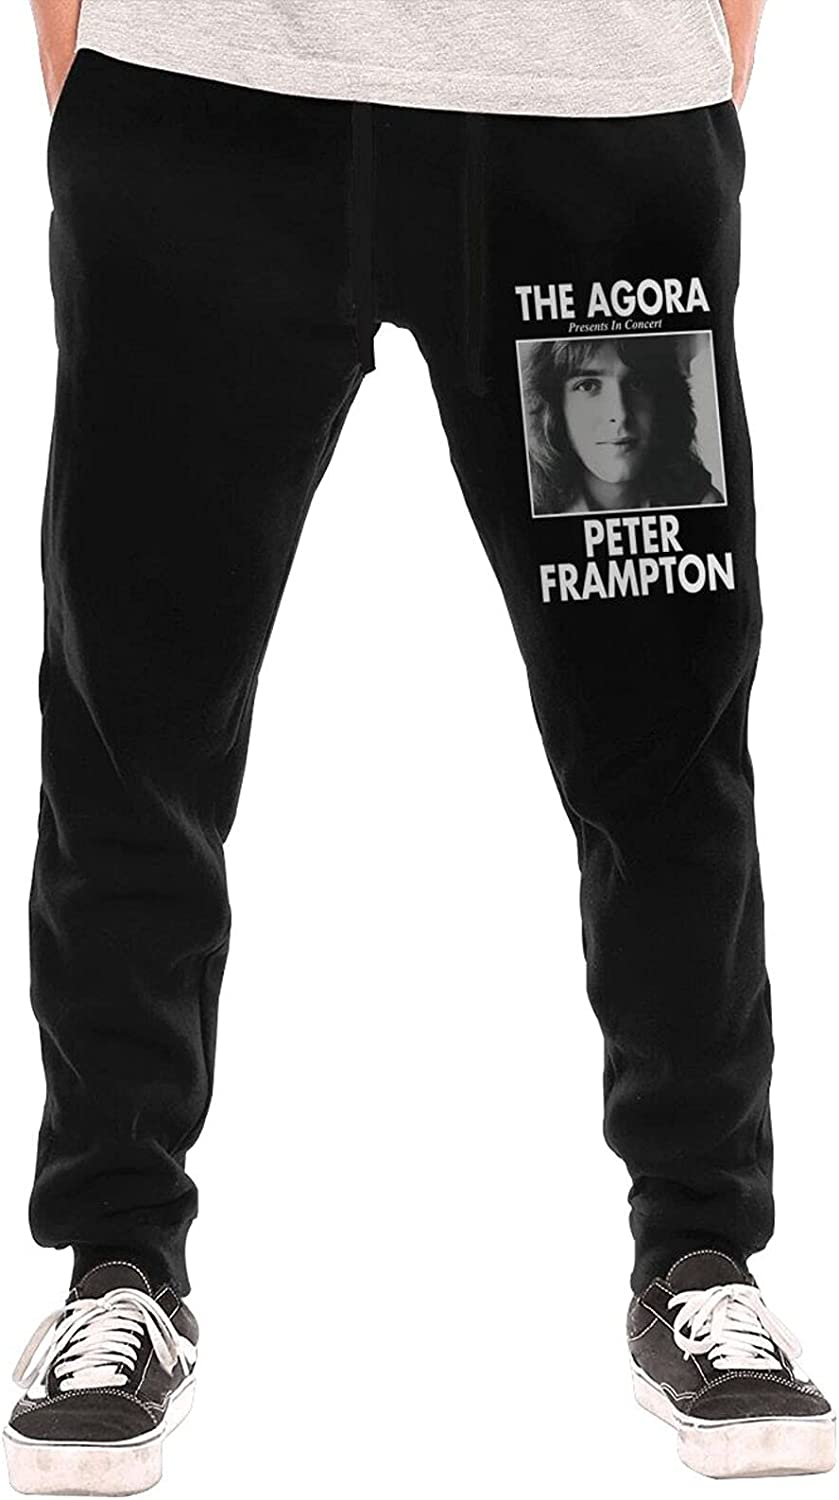 RandyDPeter Peter Frampton Boys Sweatpants Cool Trousers Long Pant with Pocket for